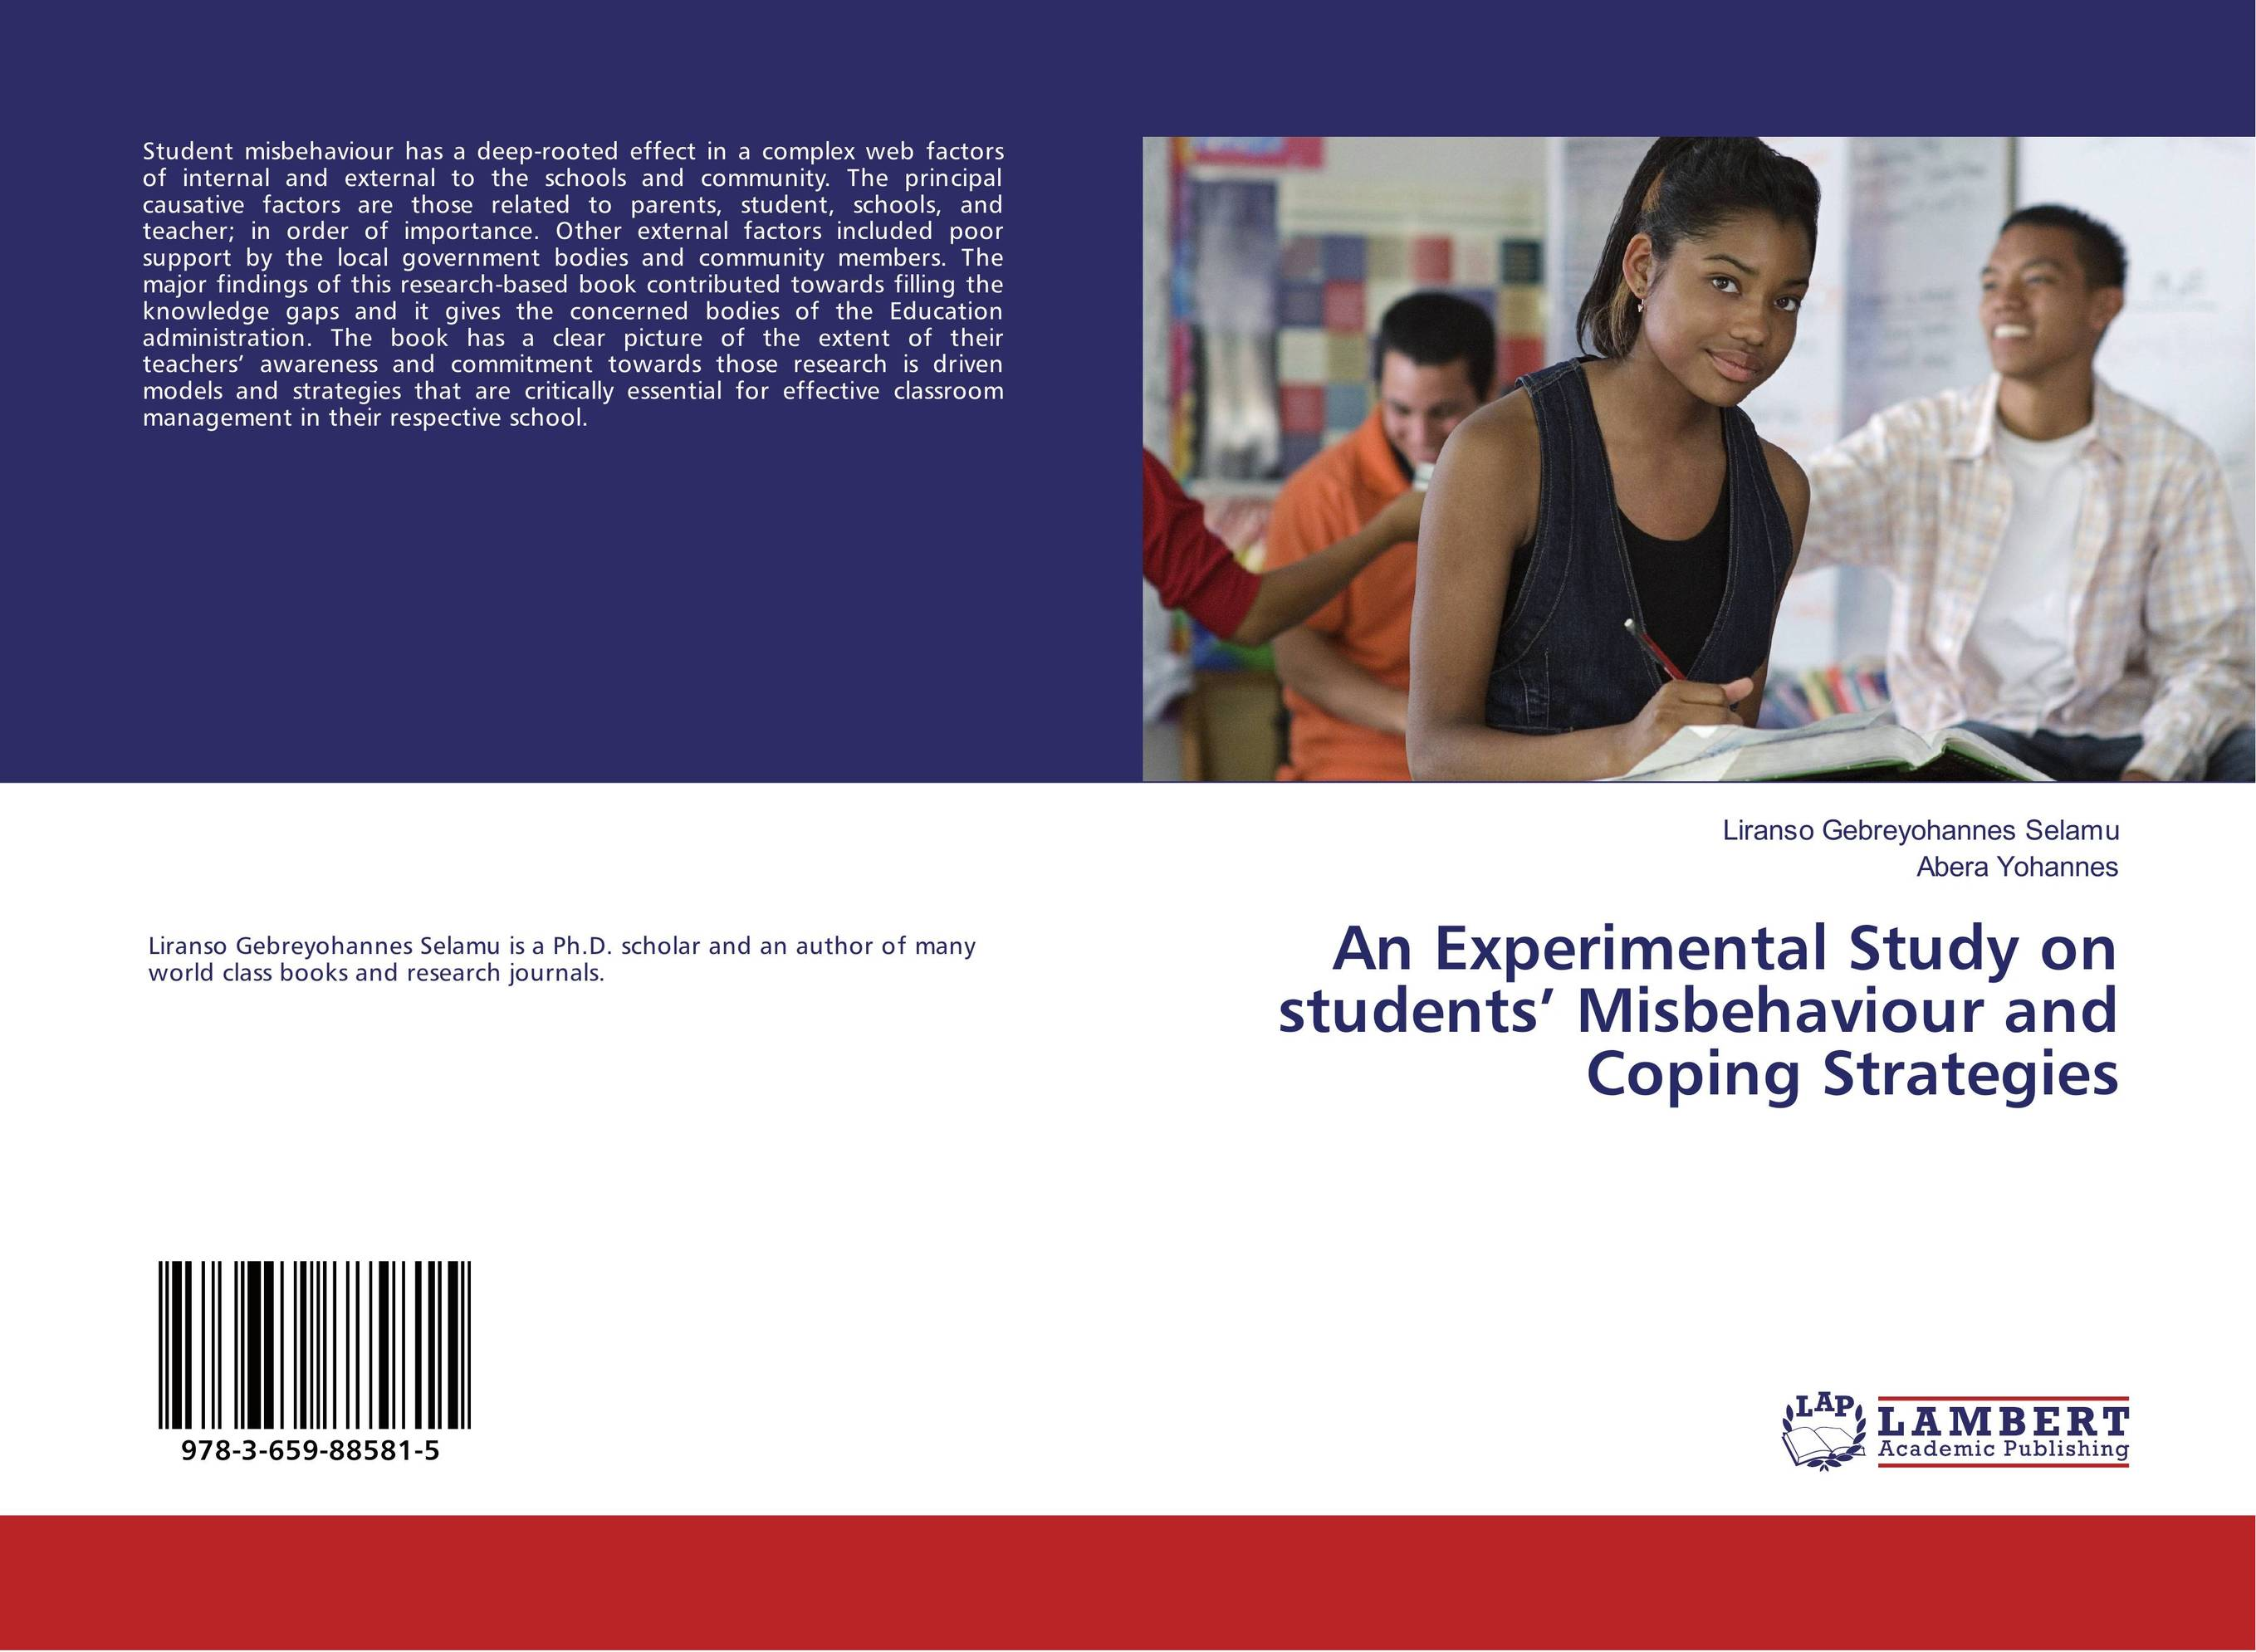 An Experimental Study on students' Misbehaviour and Coping Strategies sarah miles overloaded and underprepared strategies for stronger schools and healthy successful kids